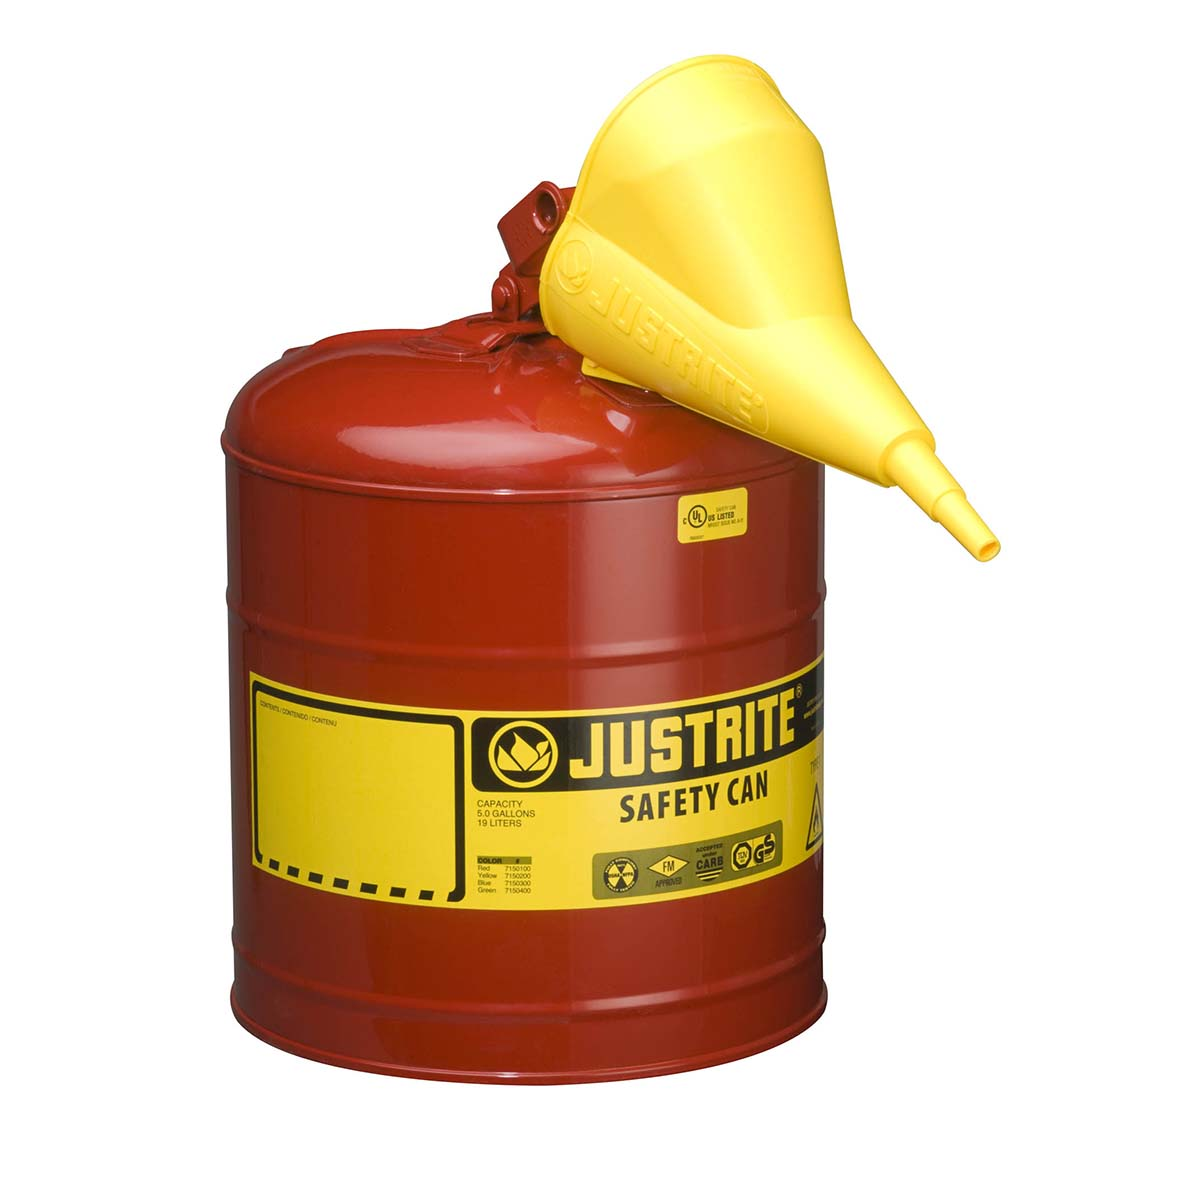 Type I Steel Safety Can for flammables, Funnel 11202Y, 5 gallon, S/S flame arrester, s/c lid, Red.